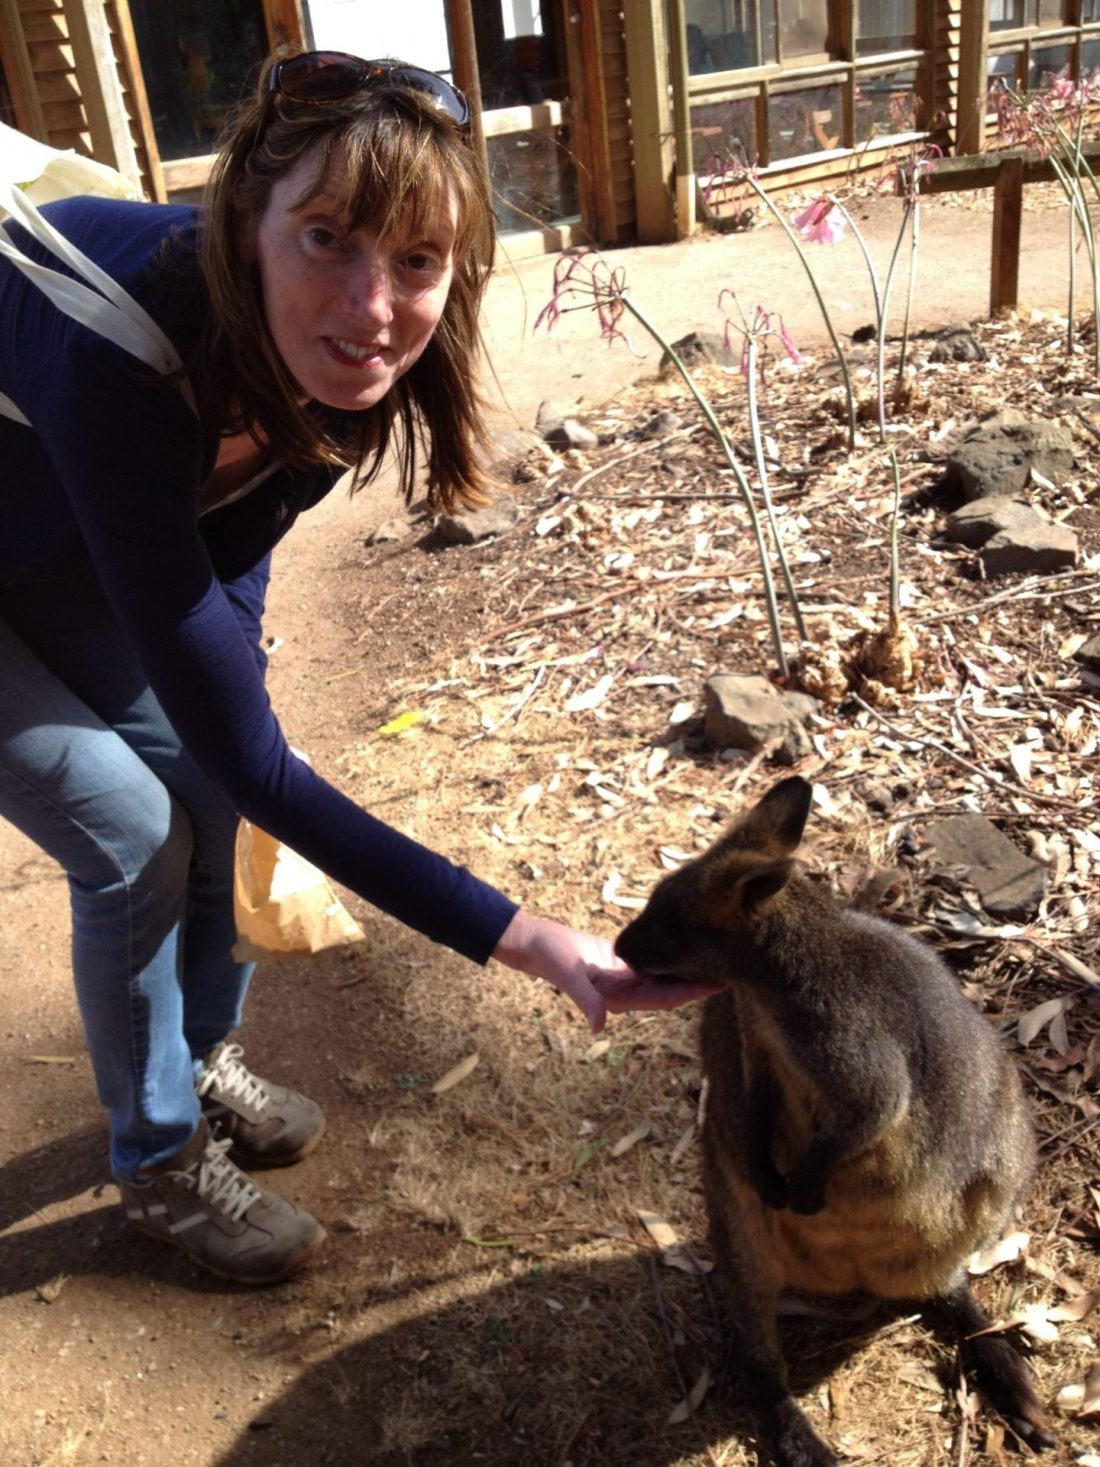 Feeding the wallabies at Phillip Island Wildlife Park